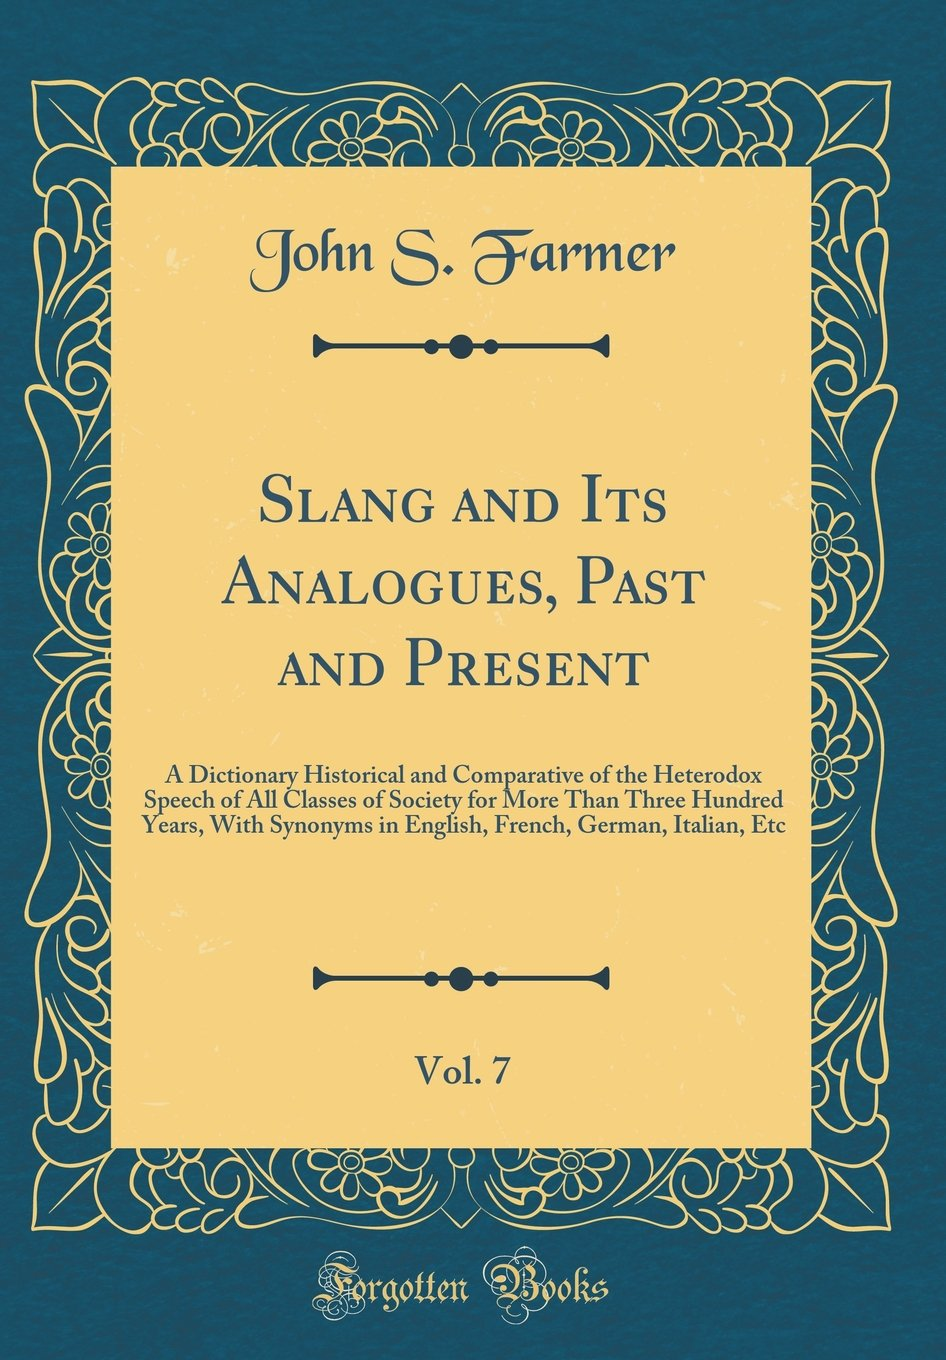 Slang and Its Analogues, Past and Present, Vol. 7: A Dictionary Historical and Comparative of the Heterodox Speech of All Classes of Society for More ... German, Italian, Etc (Classic Reprint) ePub fb2 ebook